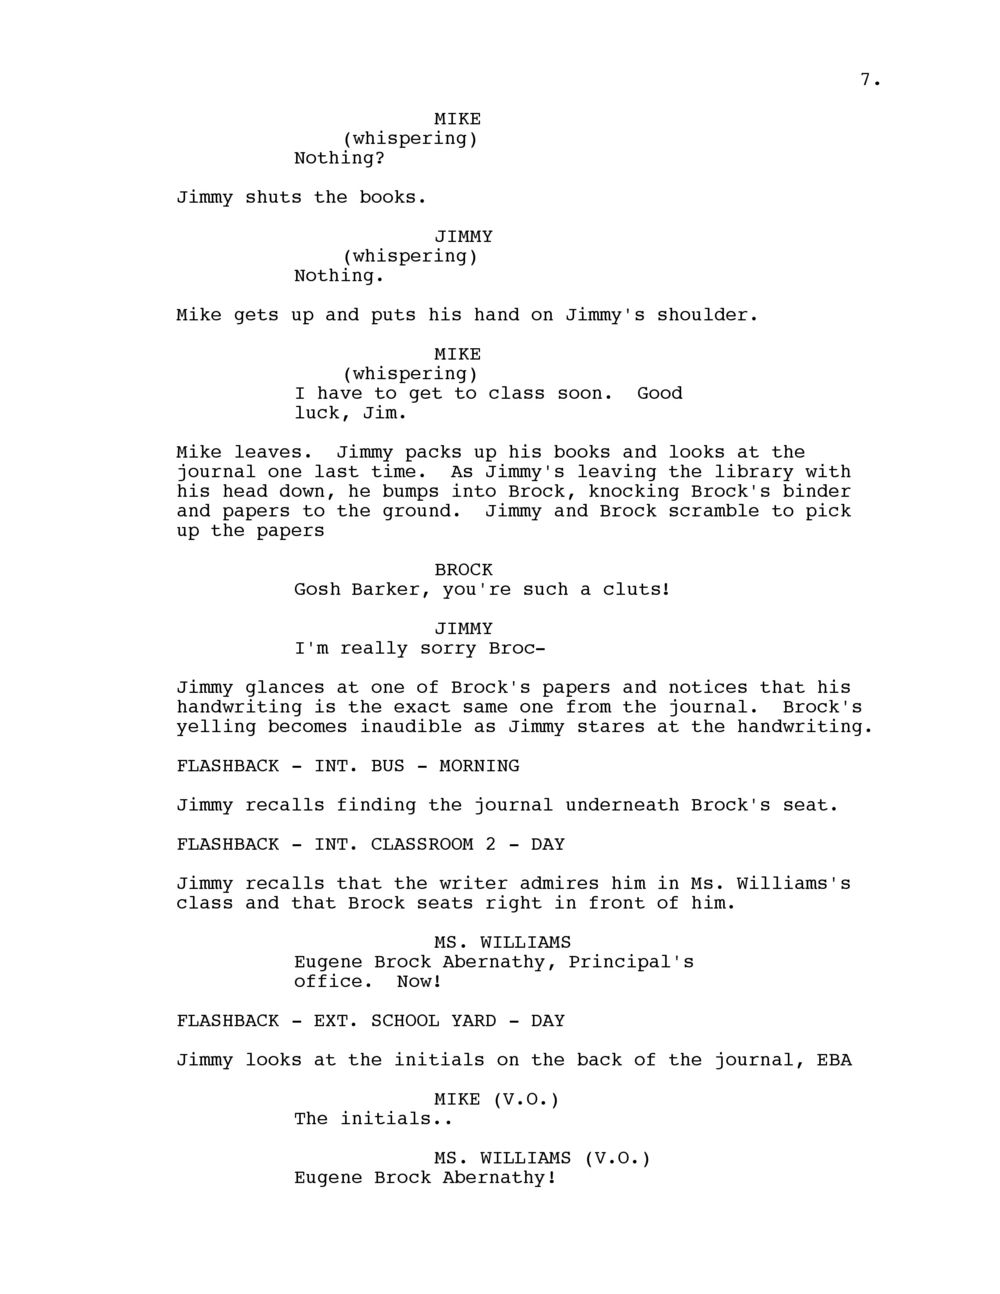 Script - The Pink Journal-7.jpg